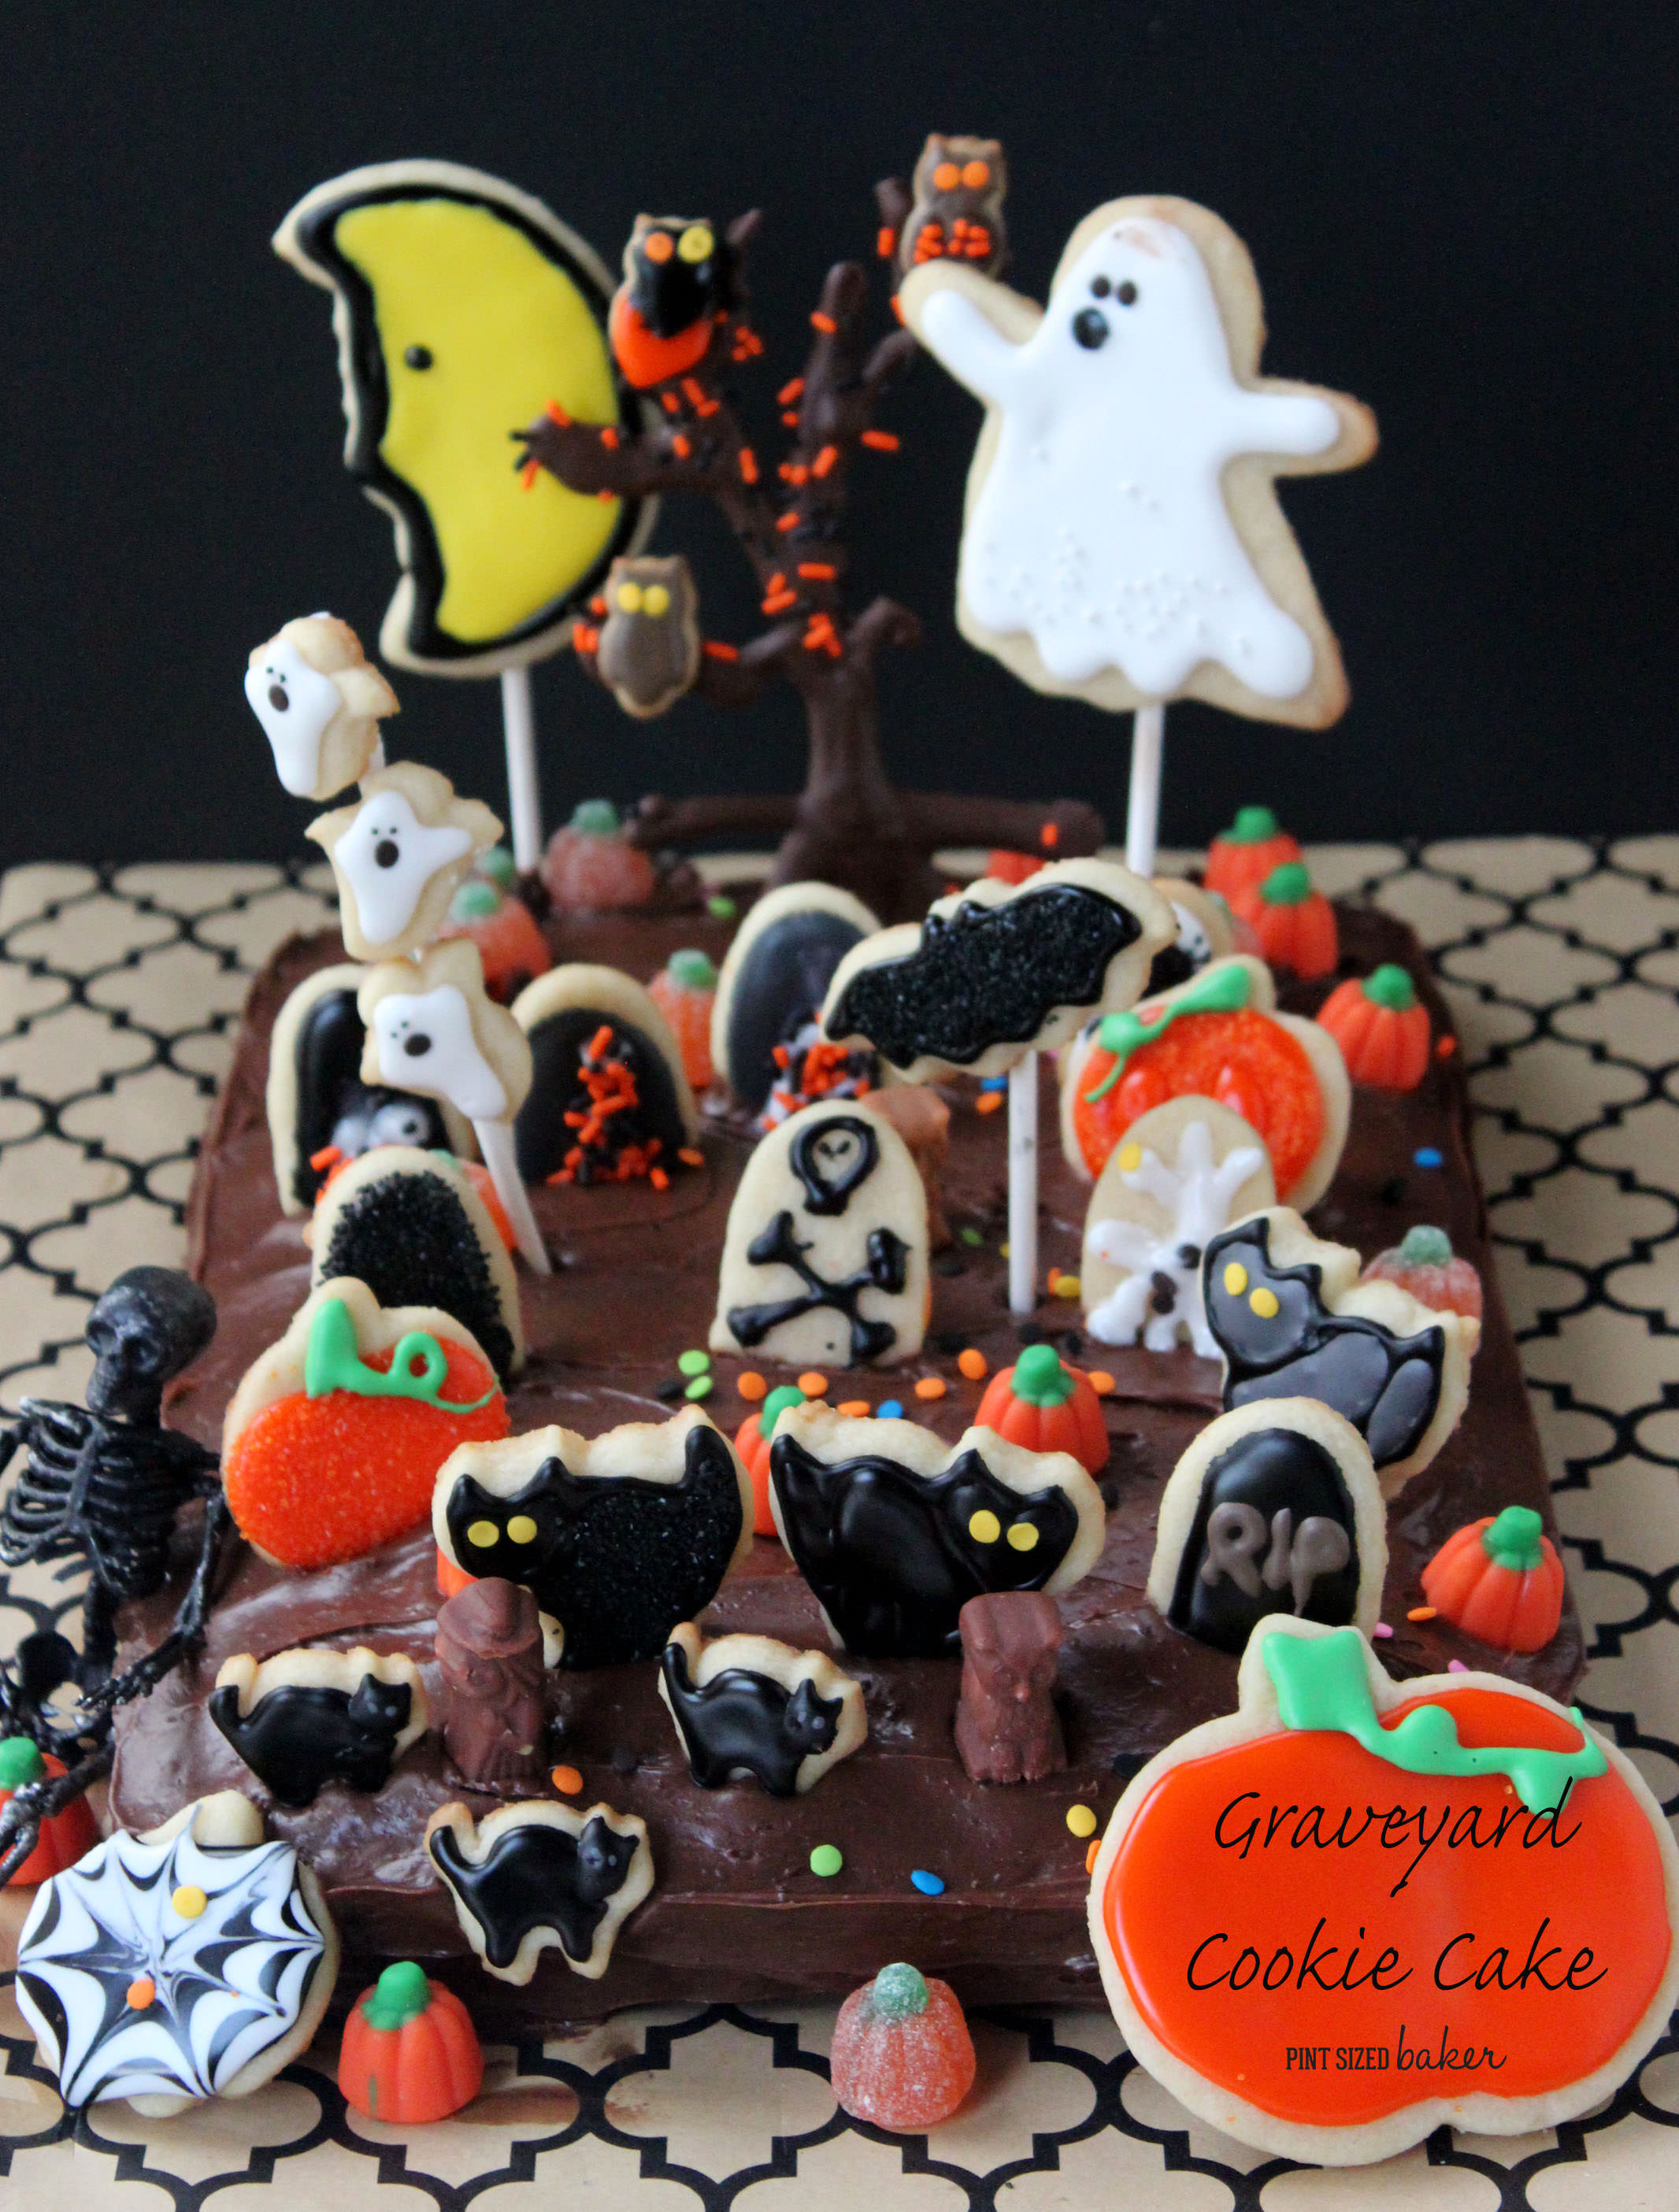 The kids are going to LOVE baking, decorating, and creating this fun Graveyard Cake for Halloween! Cookie decoration on a sheet cake!